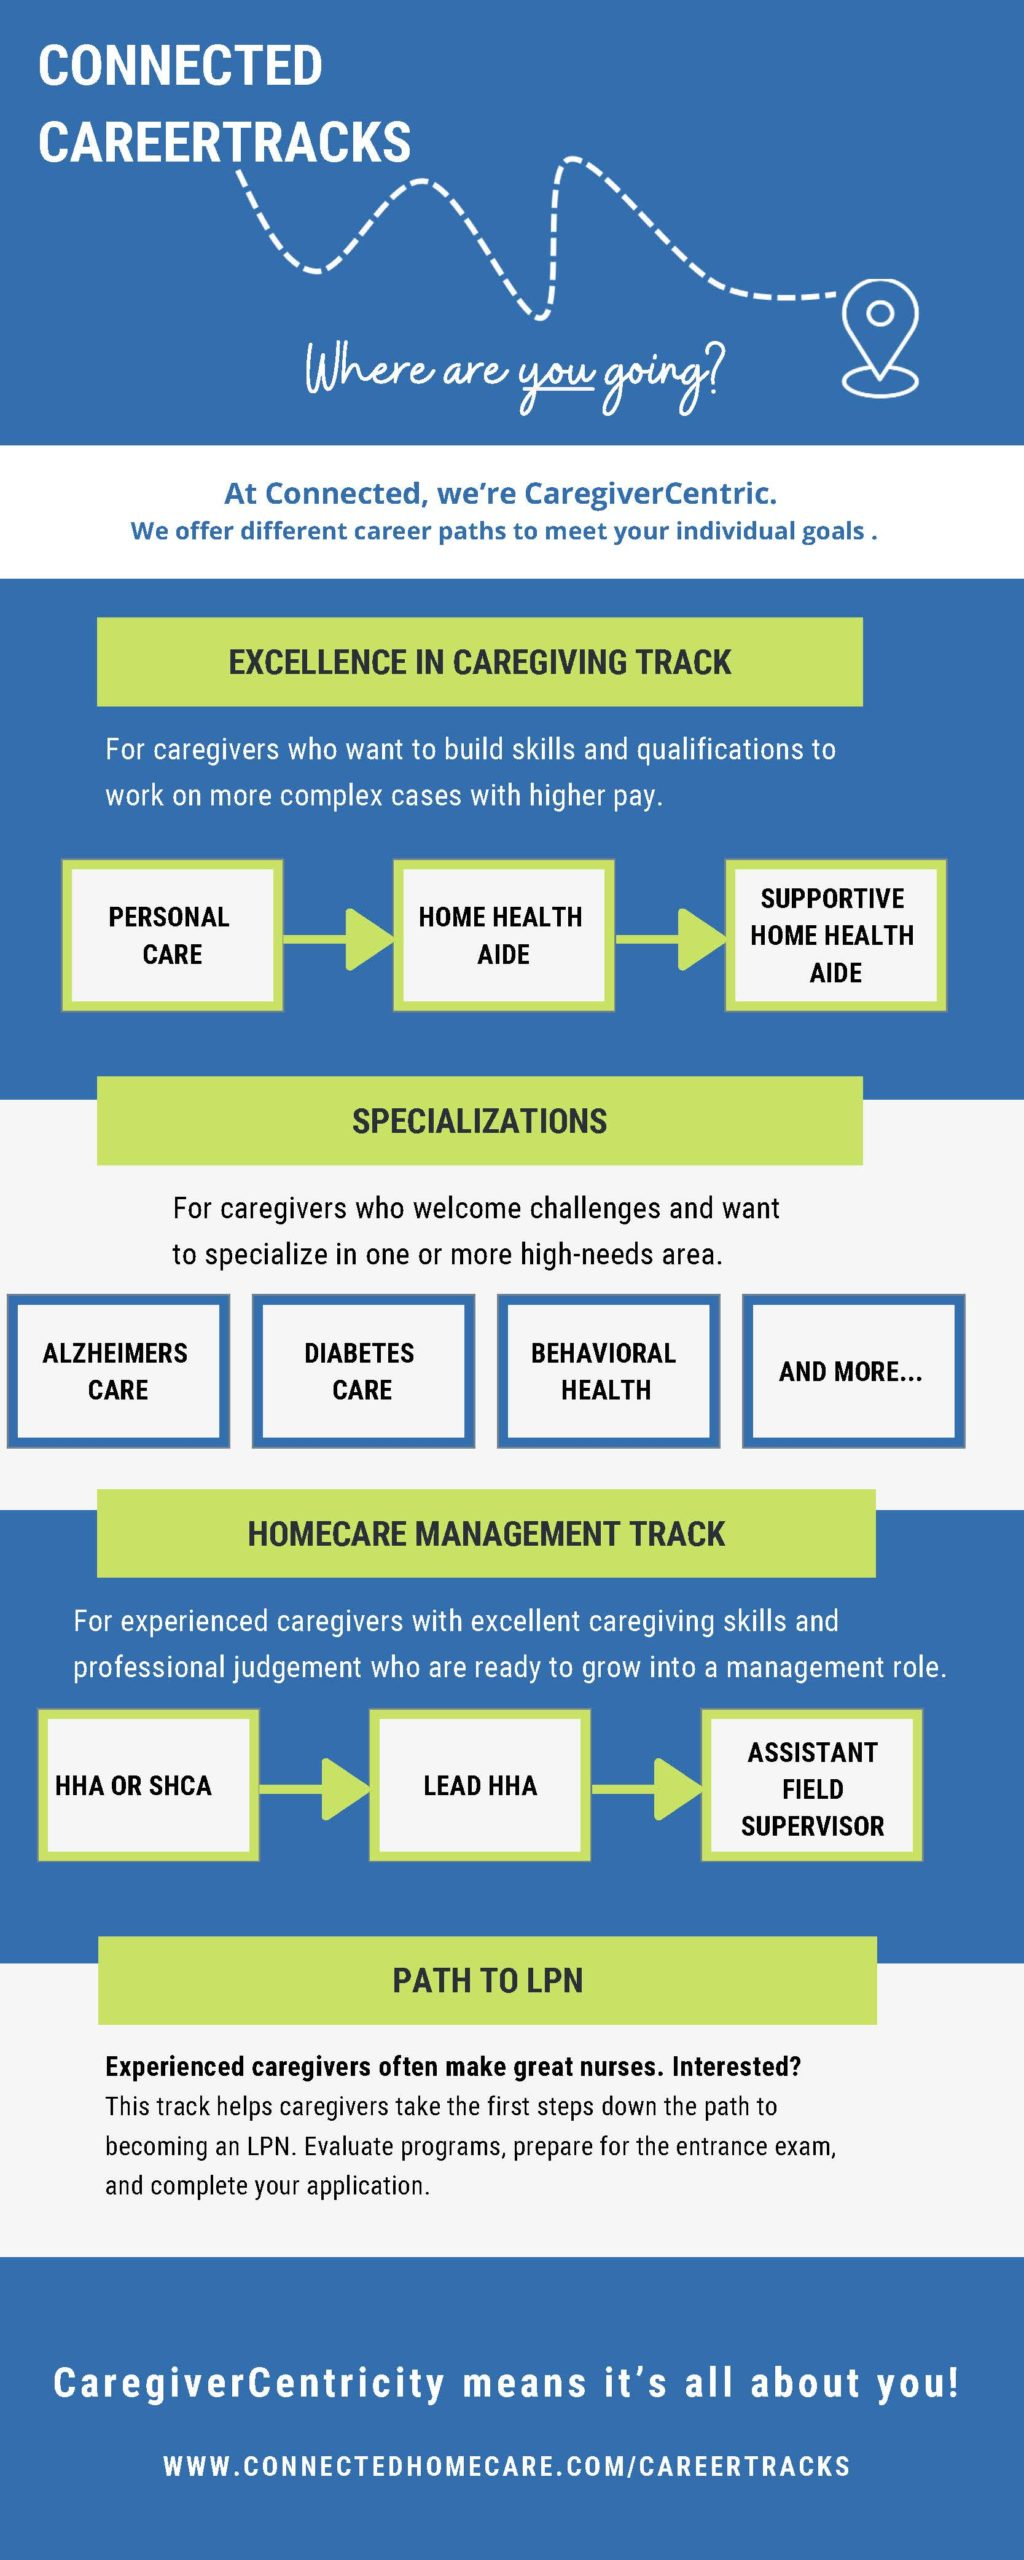 CareerTracks in Home Care